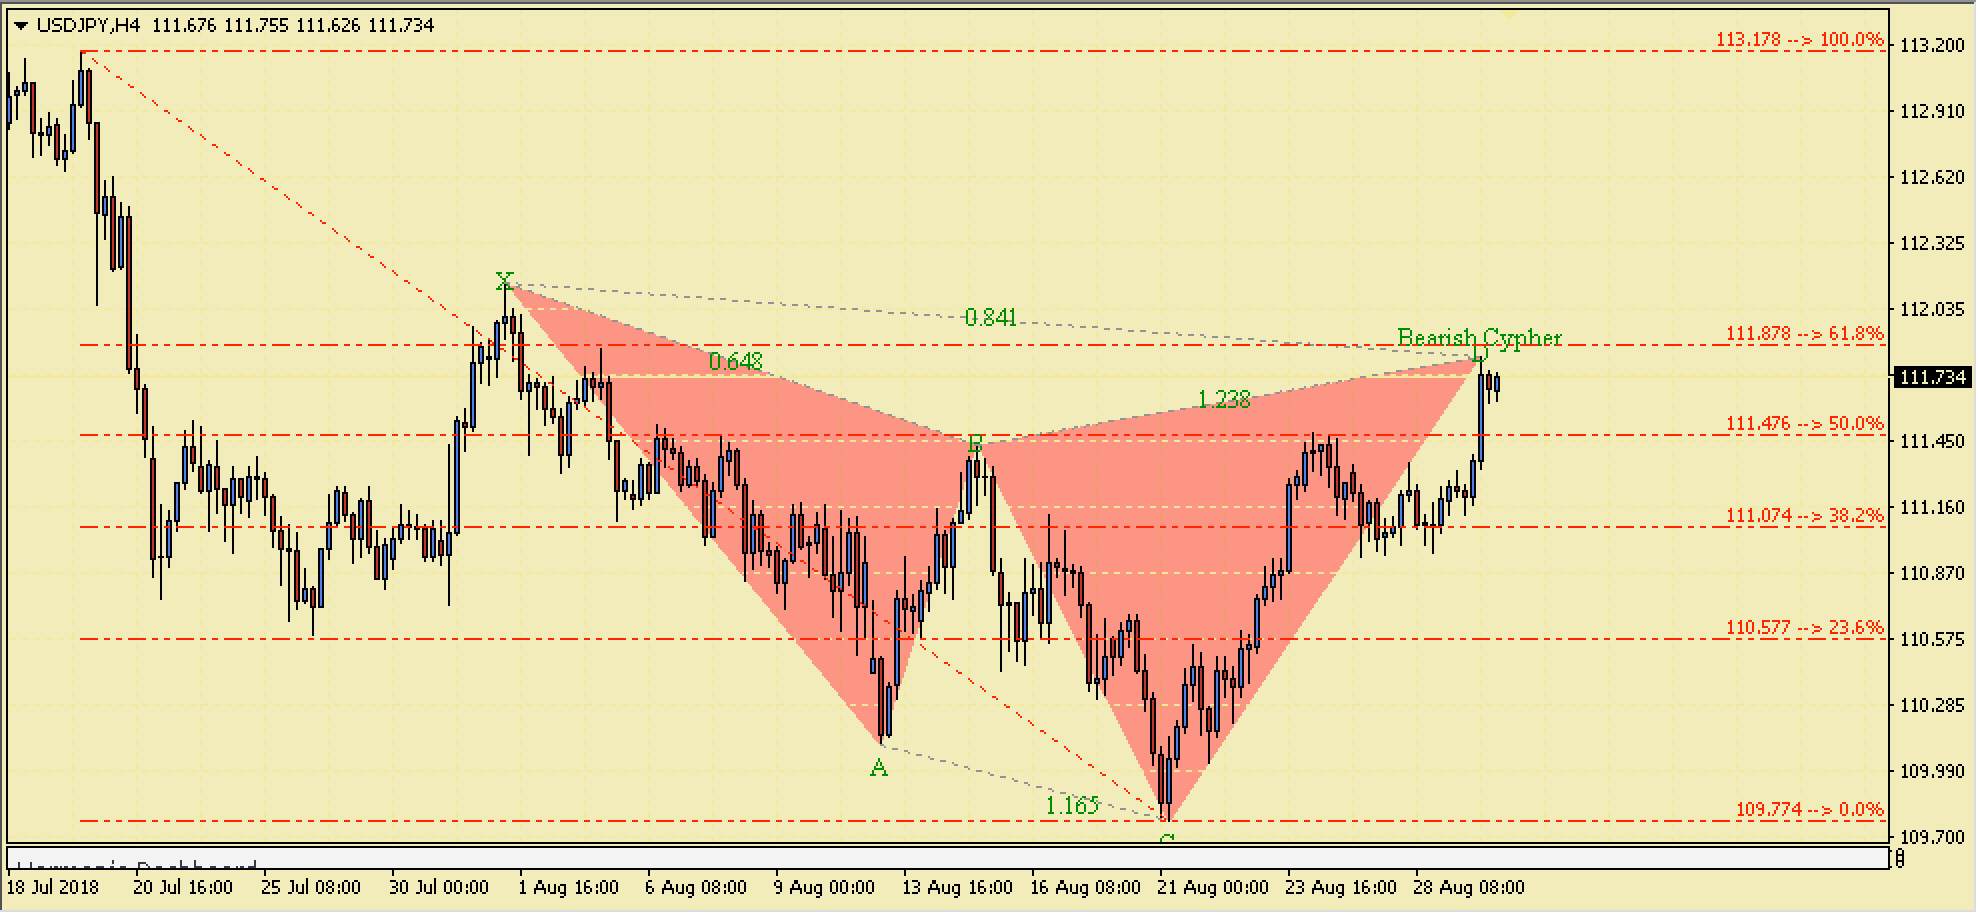 USDJPY Bearish Cypher Harmonic Pattern – 29th August 2018